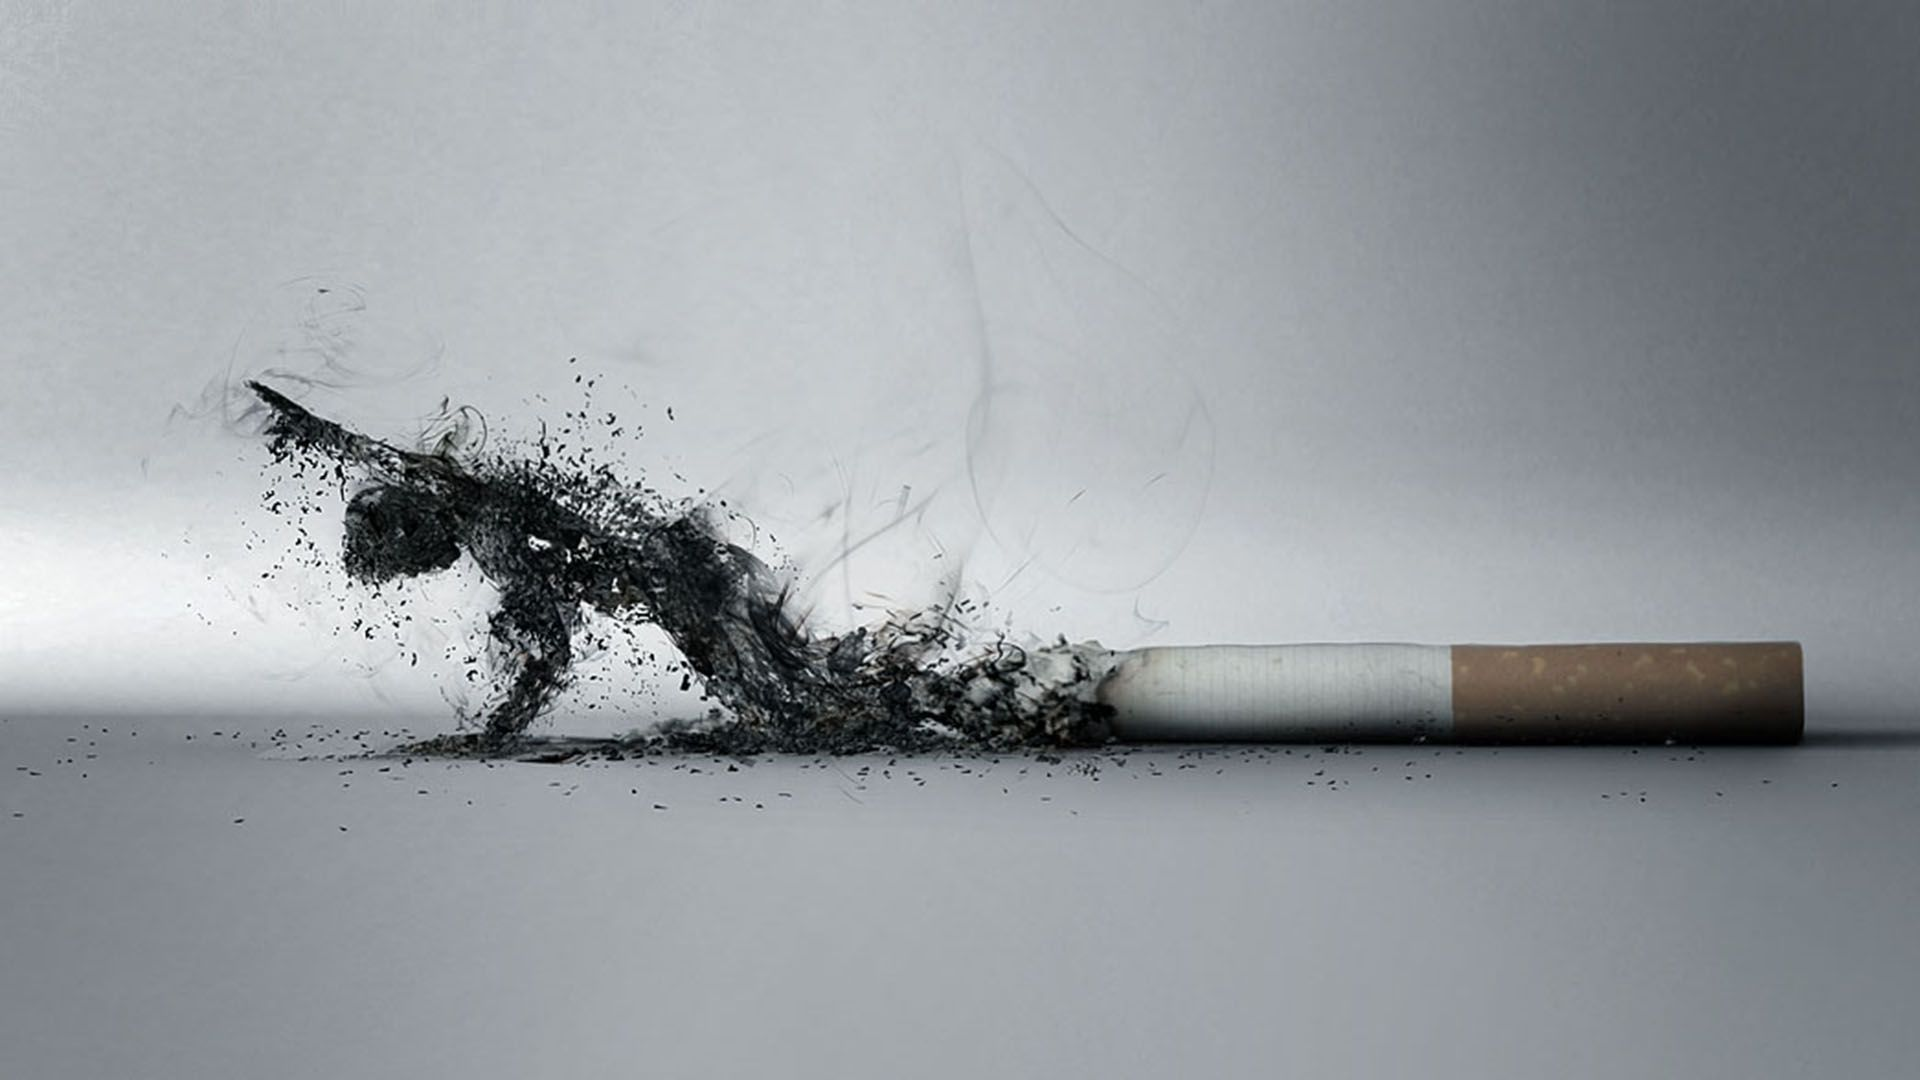 Smoking Kills The Human Funny Picture Funny Pictures 1920x1080